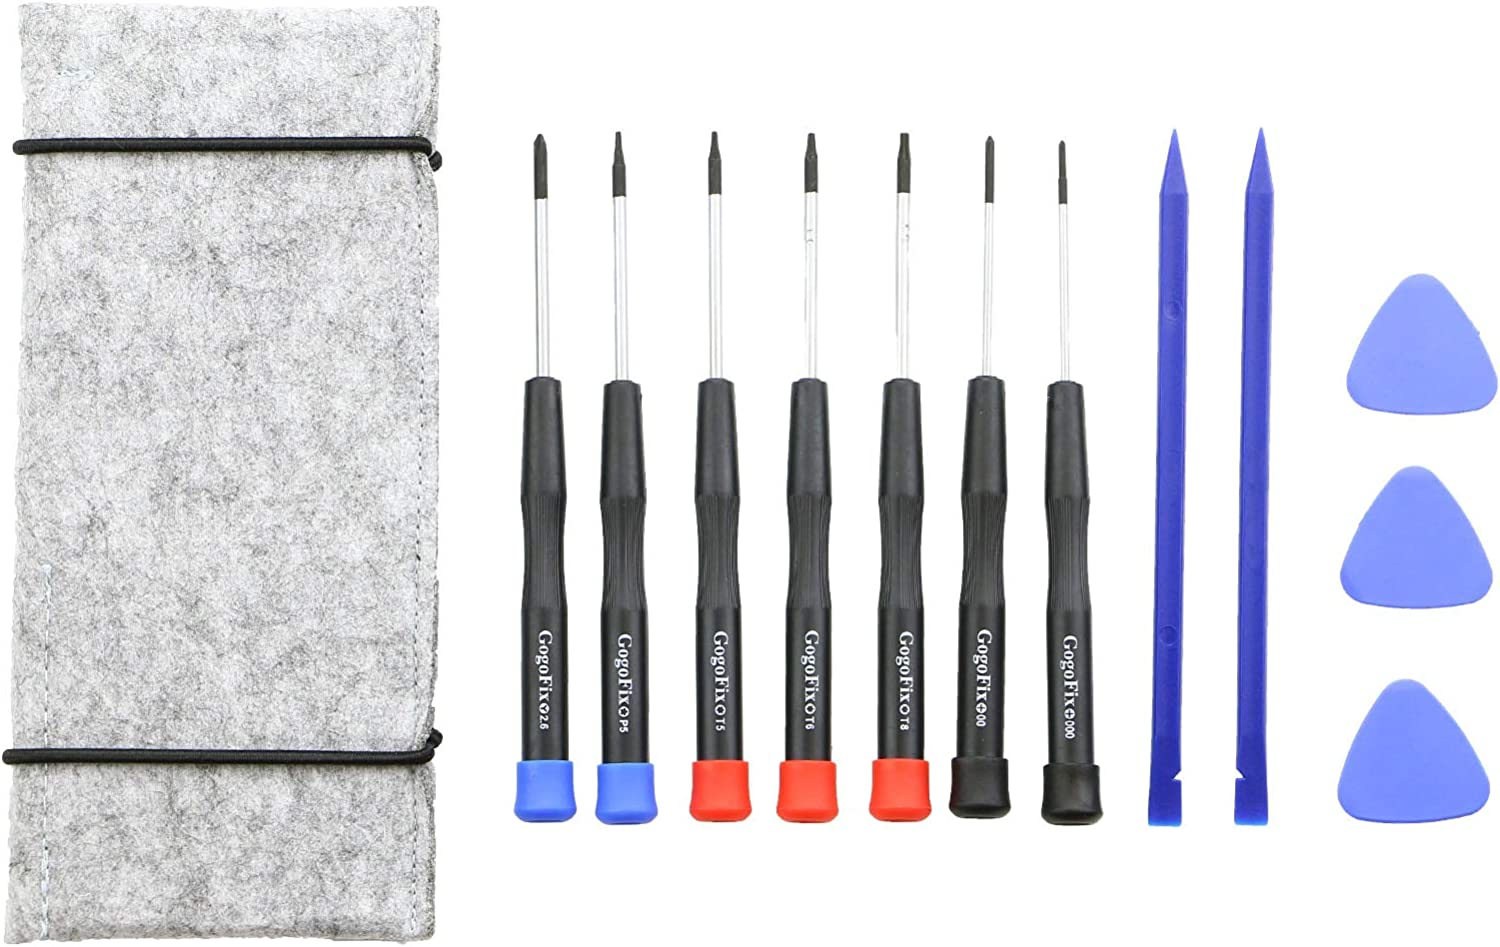 Precision Screwdriver Repair Tool Kit Compatible with MacBook Pro and MacBook Air Repairing and Maintenance (12 Pieces)